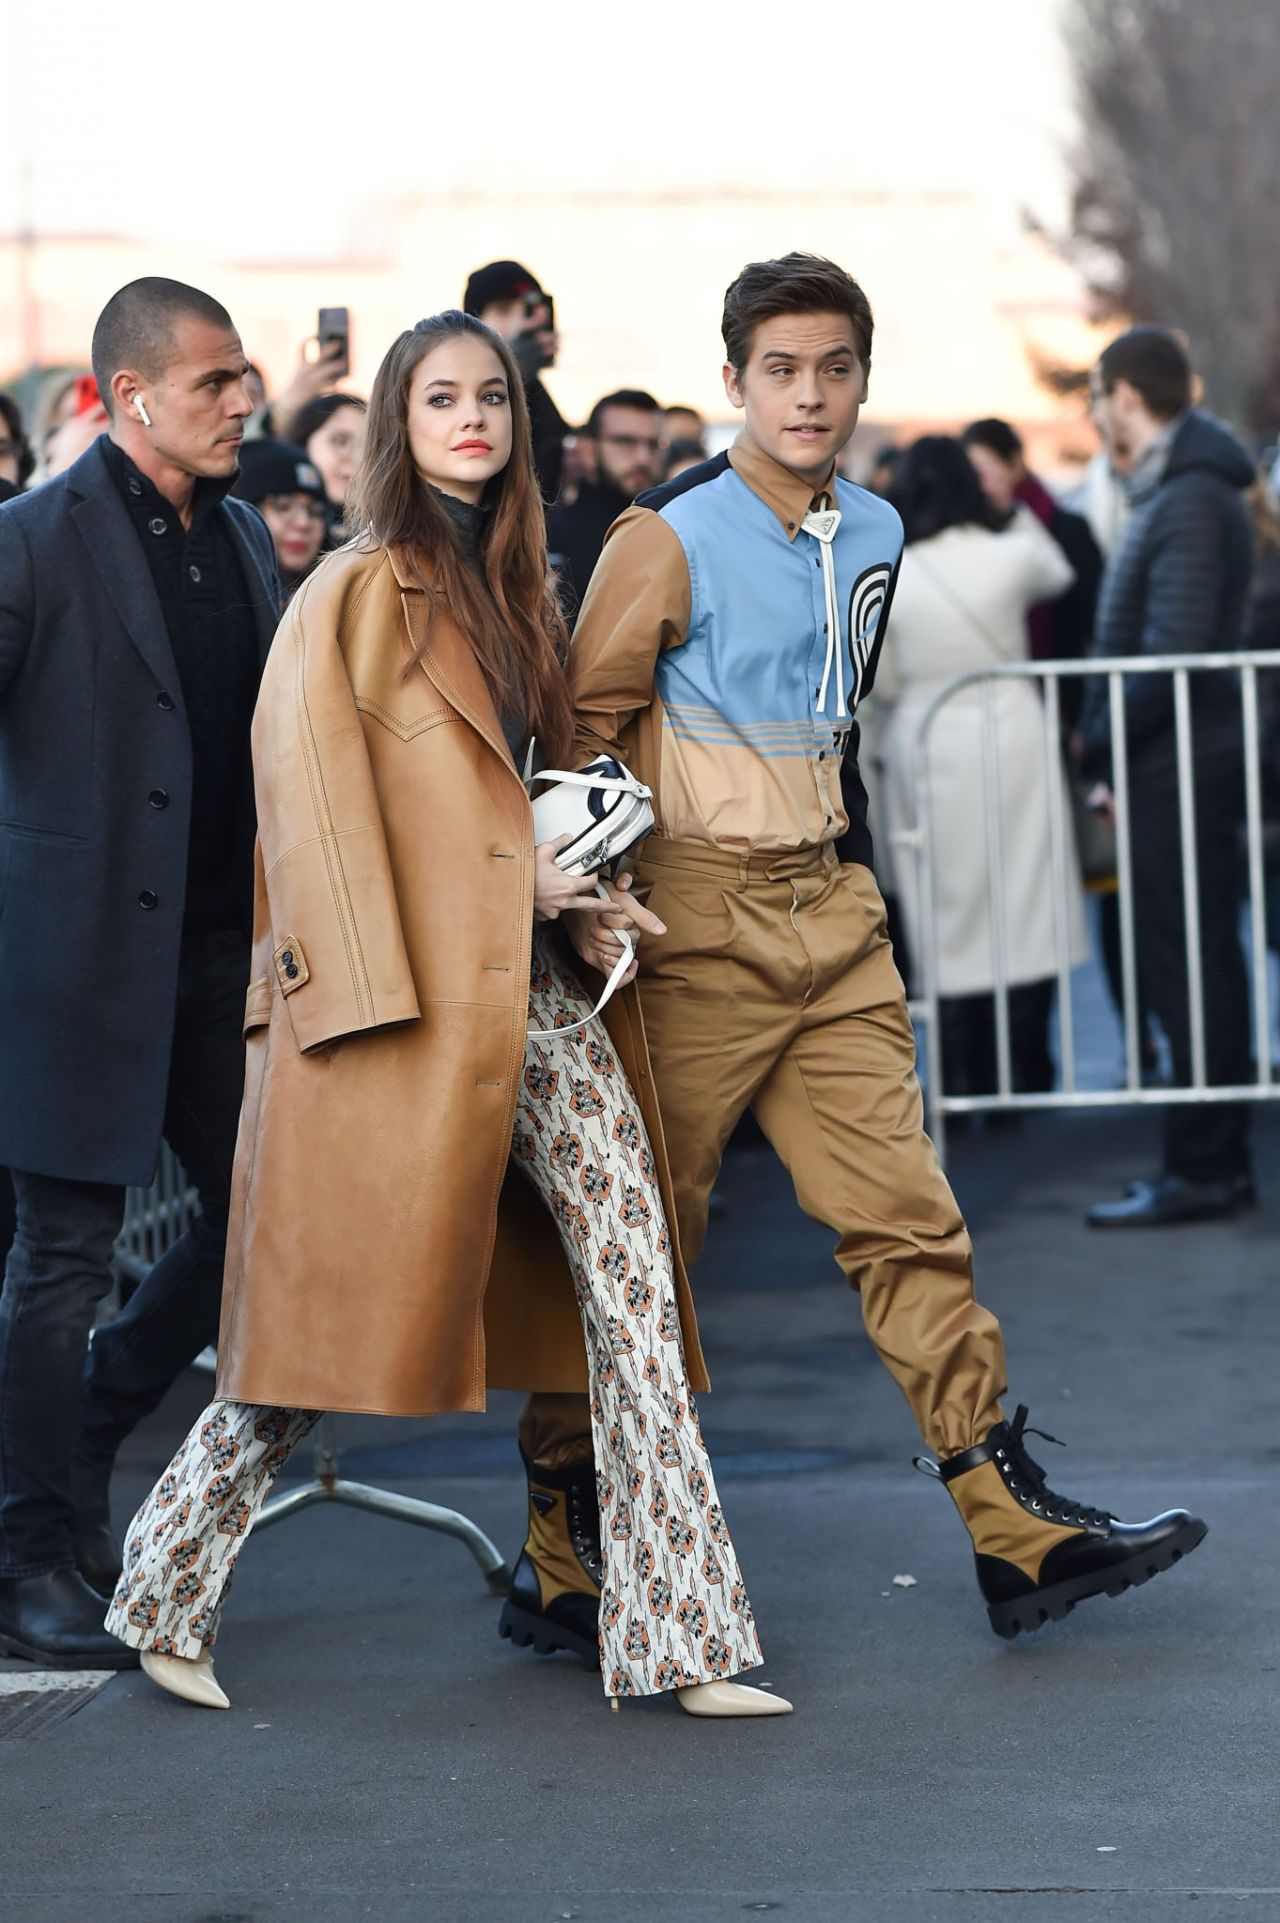 barbara-palvin-and-dylan-sprouse-arriving-prada-fall-2020-show-in-milan